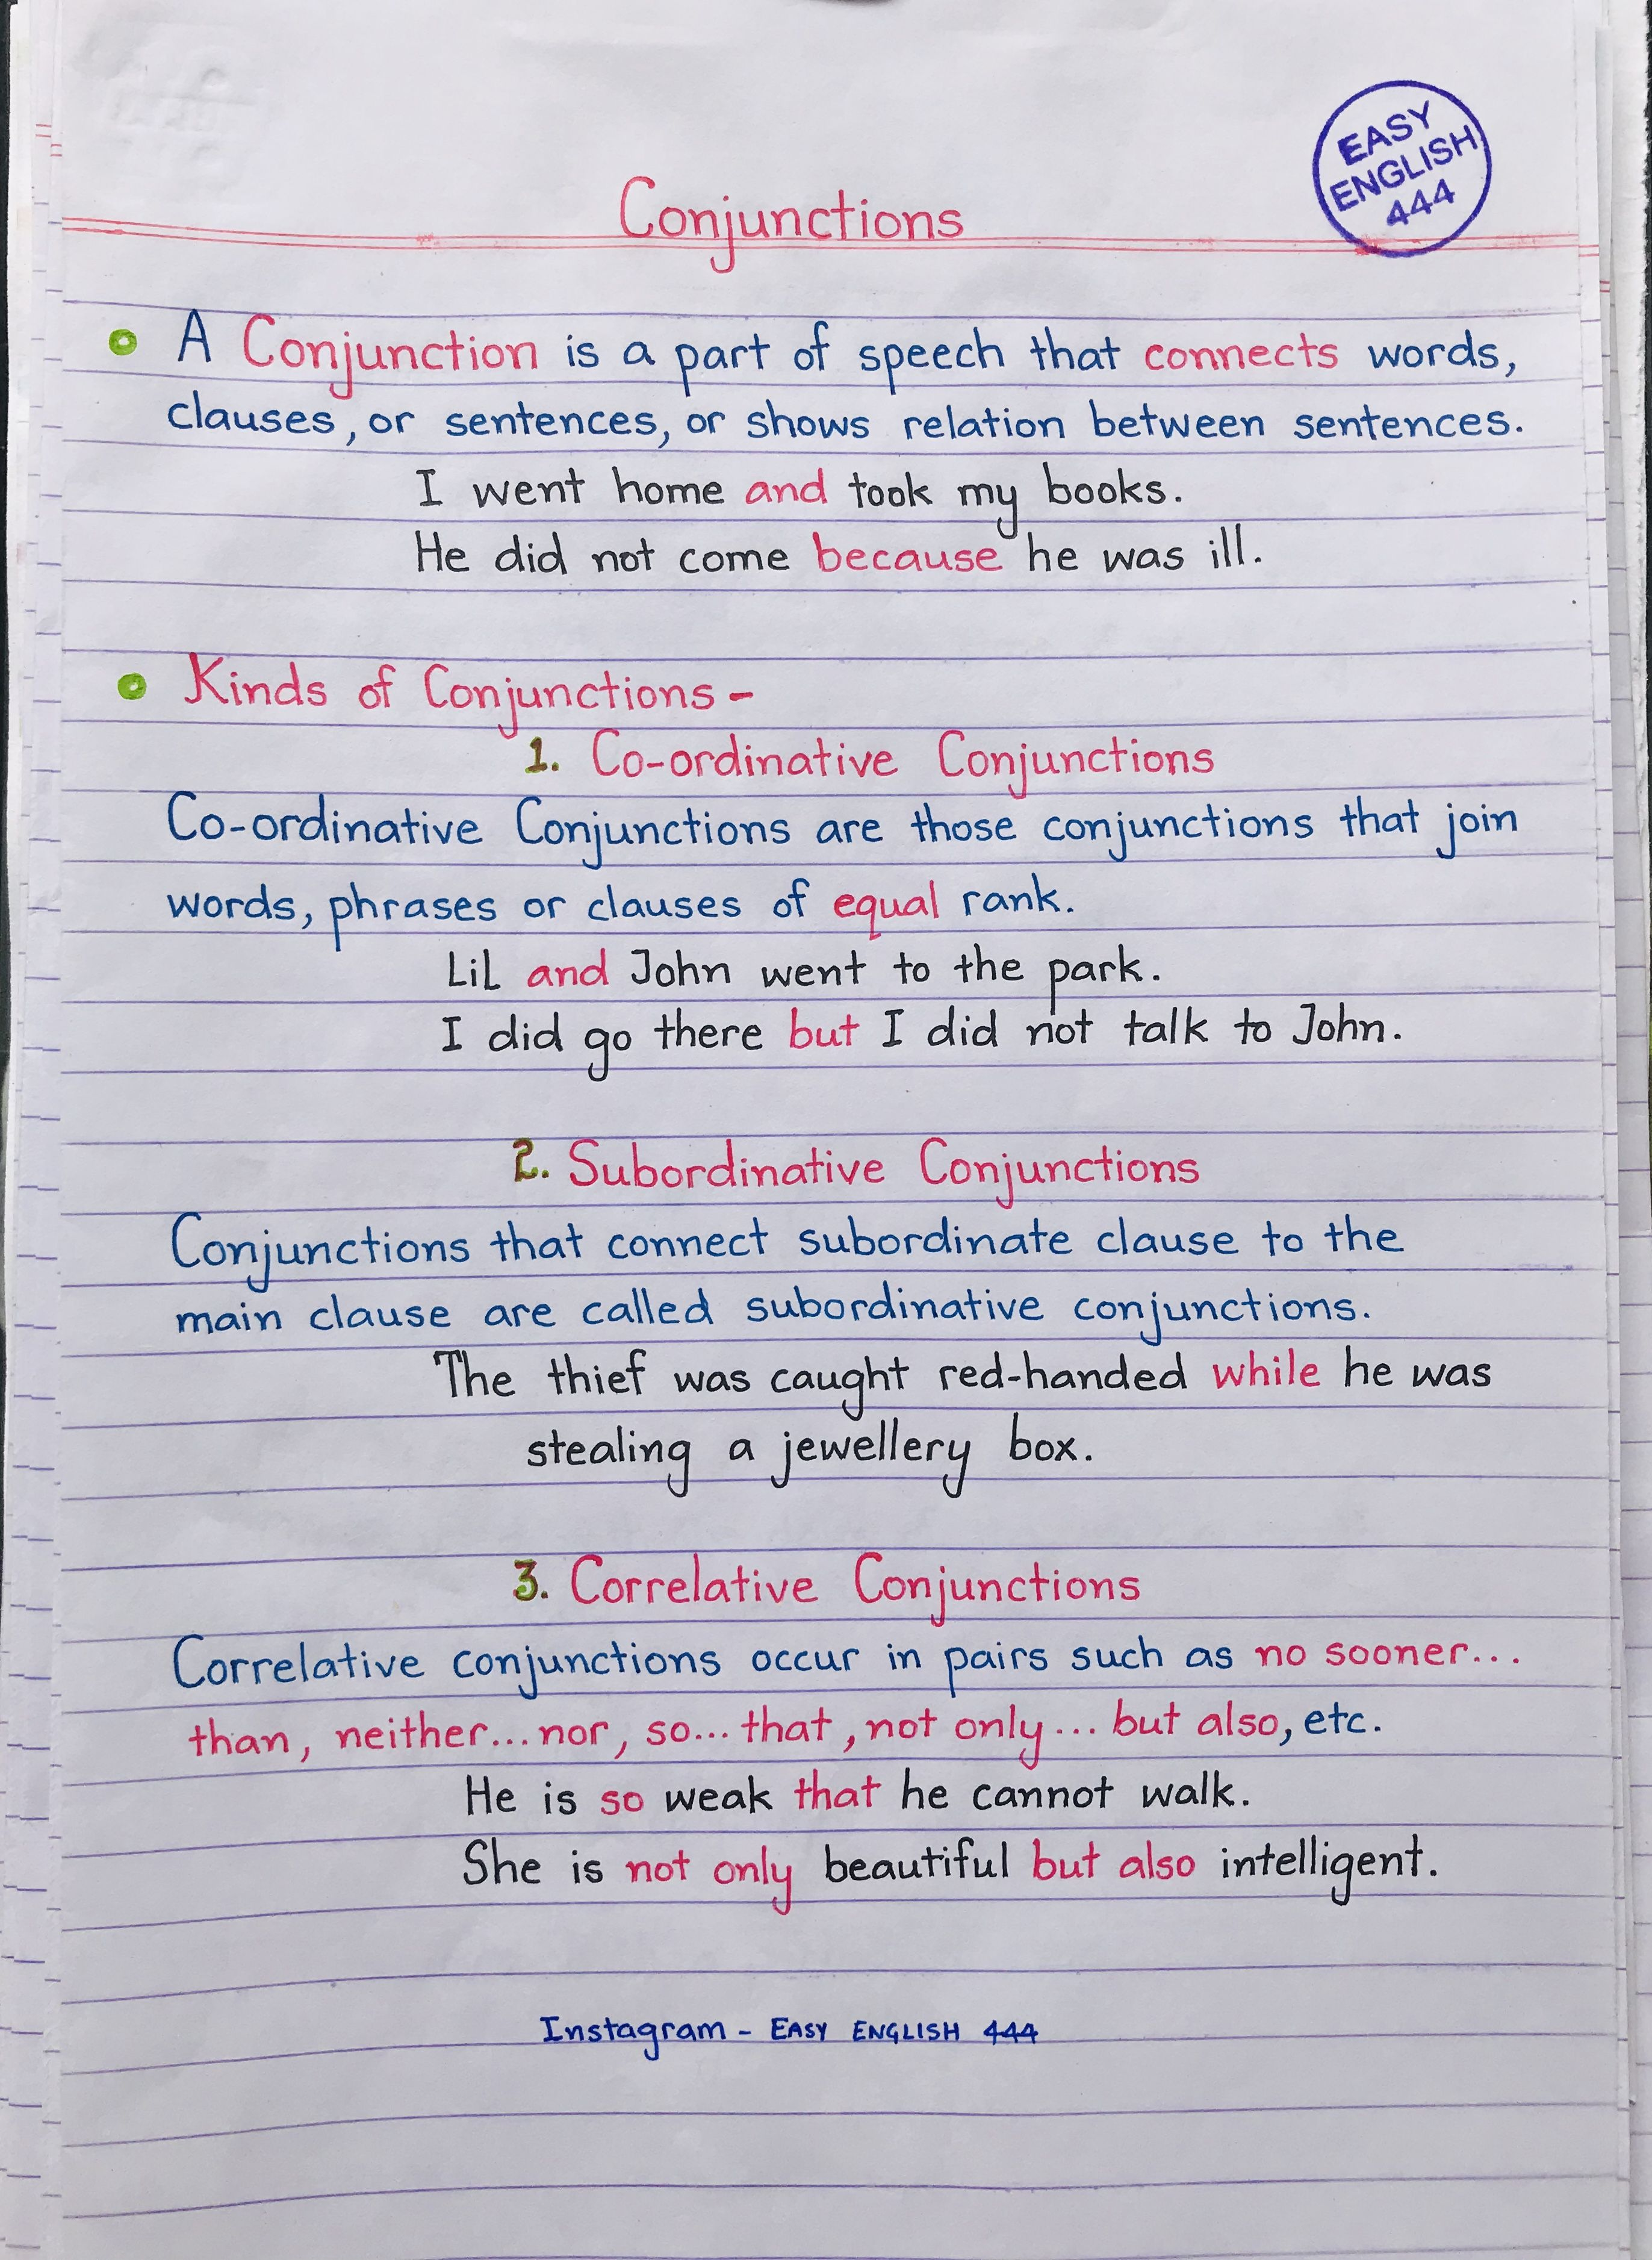 Learn English Grammar Handwritten With Images